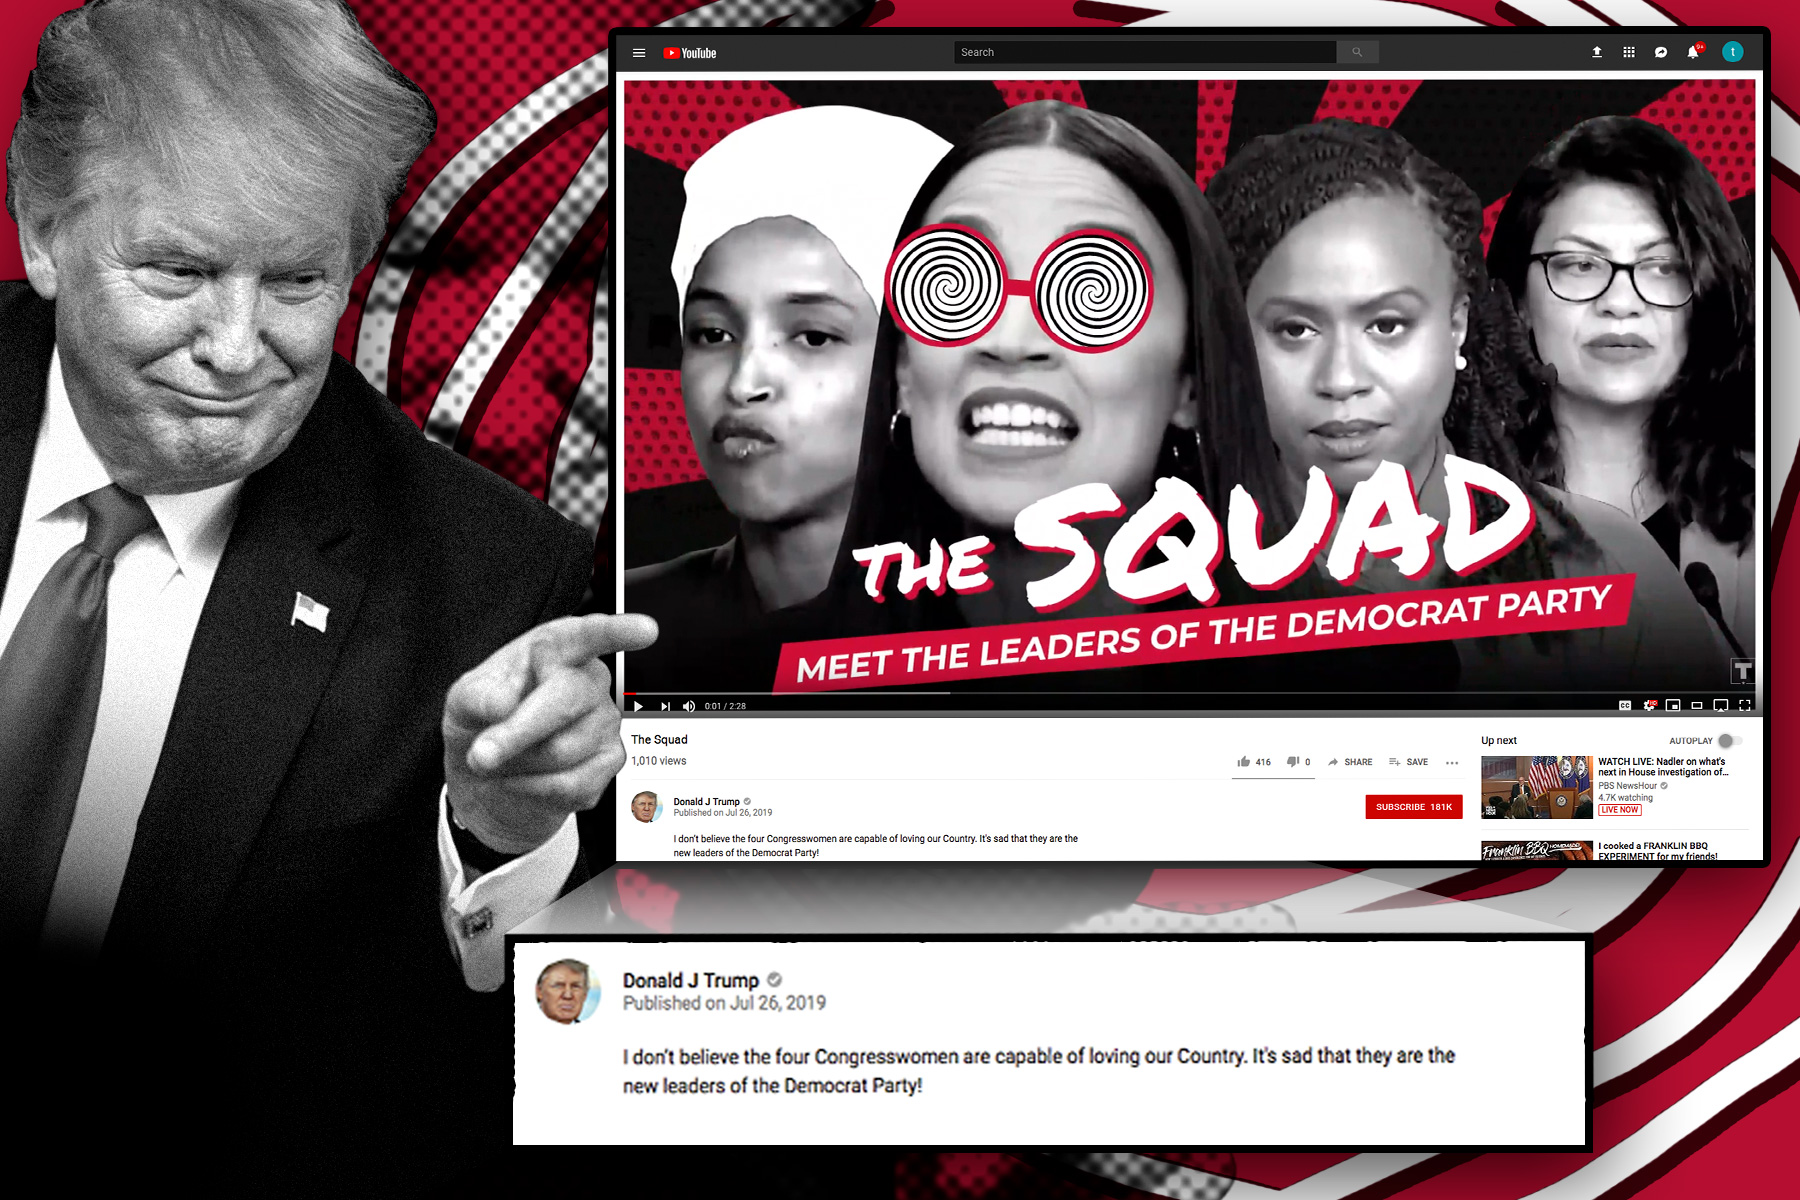 Trump slams 'The Squad' in new animated video